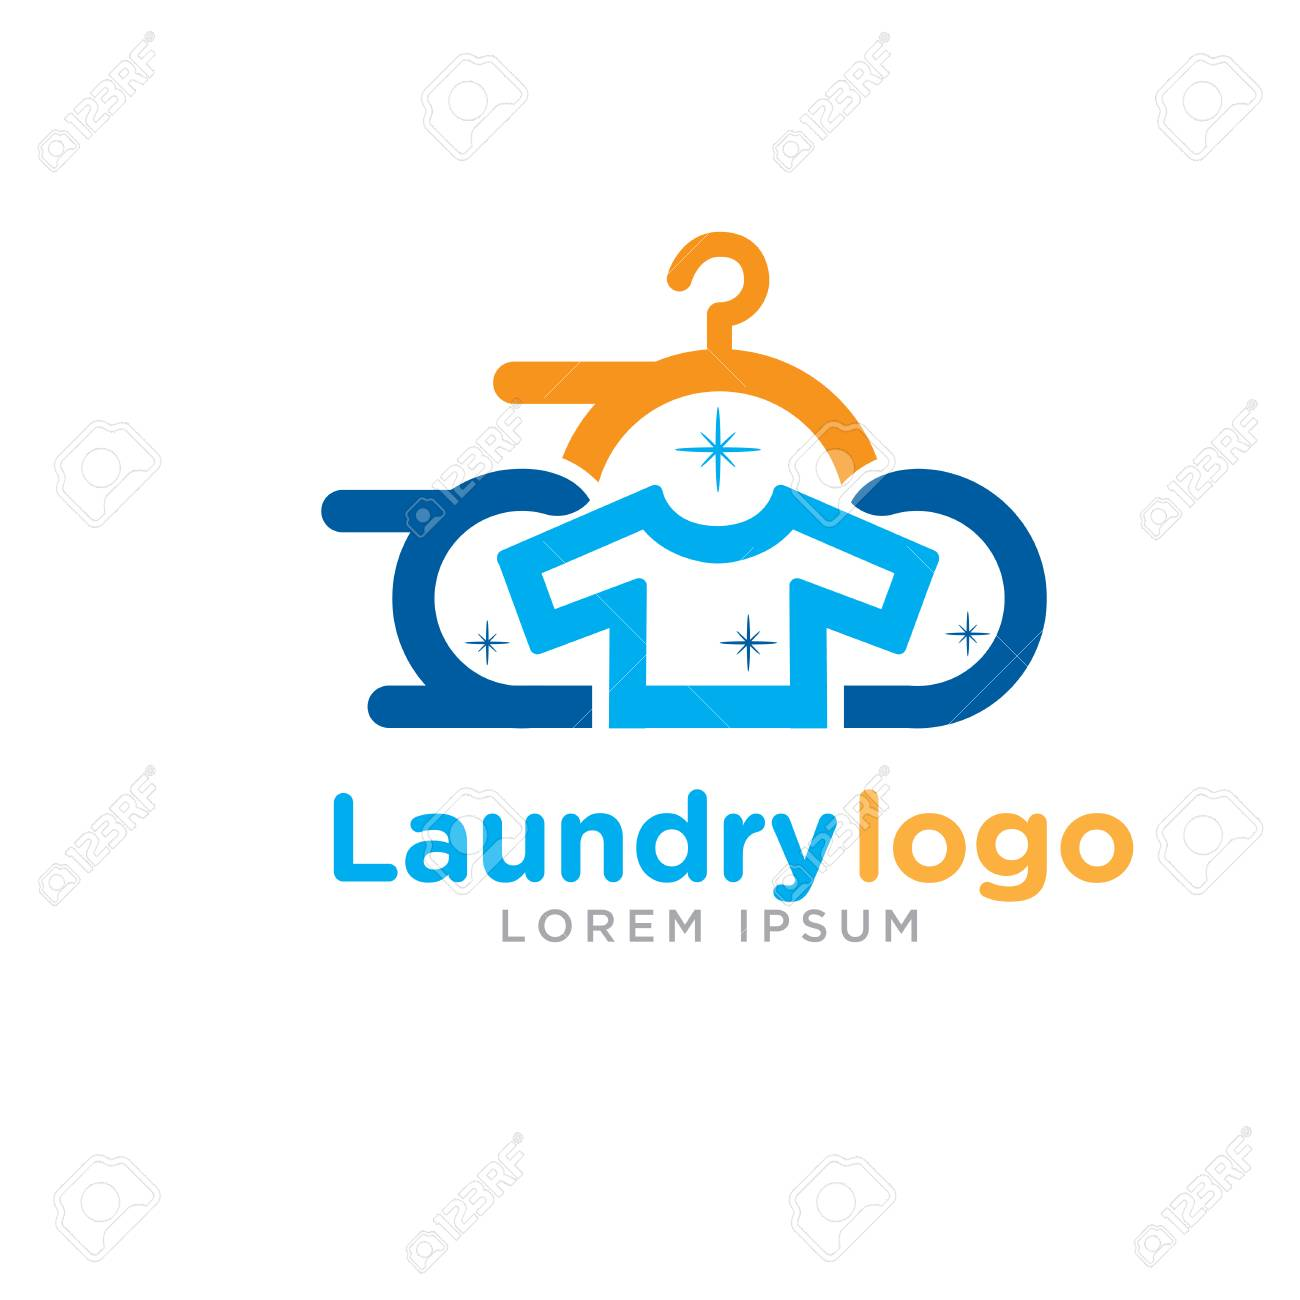 fast laundry logo designs royalty free cliparts vectors and stock illustration image 114361604 fast laundry logo designs